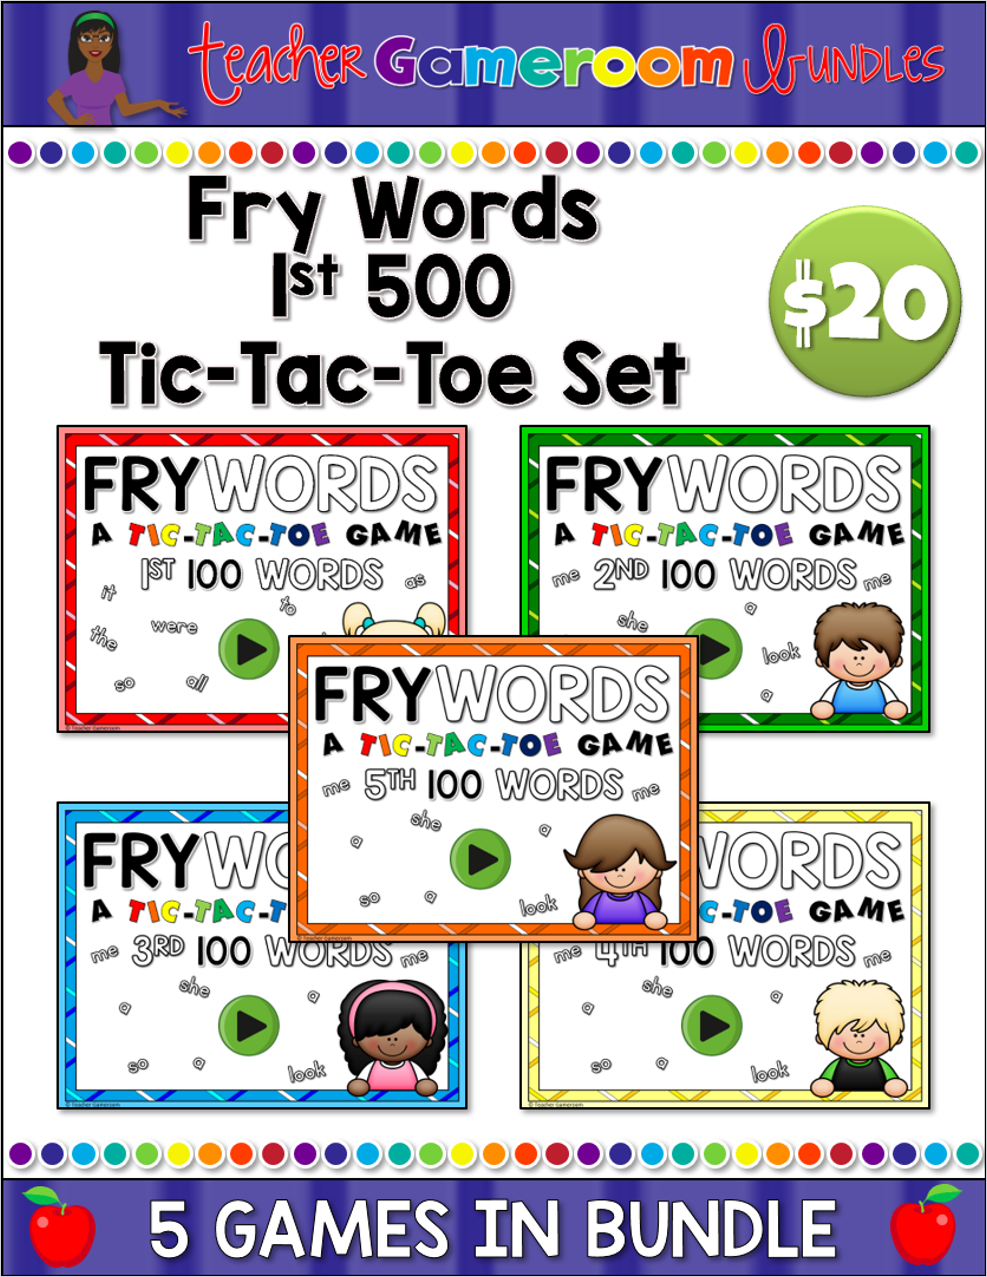 Fry Words 1st 500 Tic-Tac-Toe Complete Set